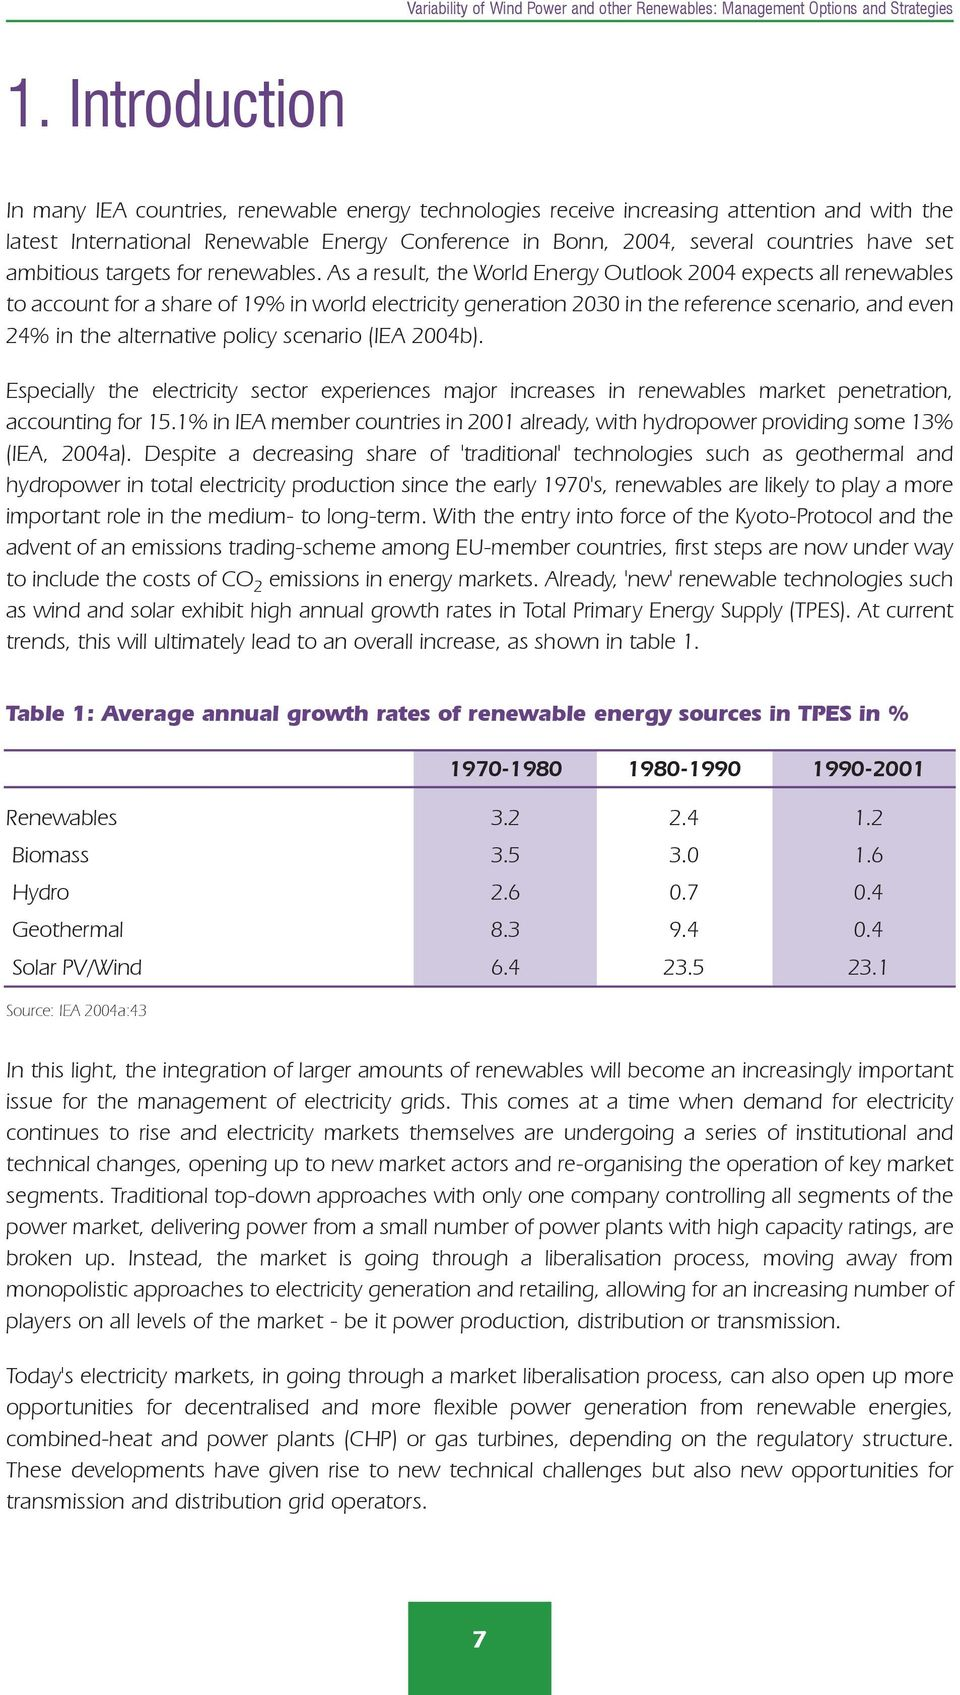 As a result, the World Energy Outlook 2004 expects all renewables to account for a share of 19% in world electricity generation 2030 in the reference scenario, and even 24% in the alternative policy